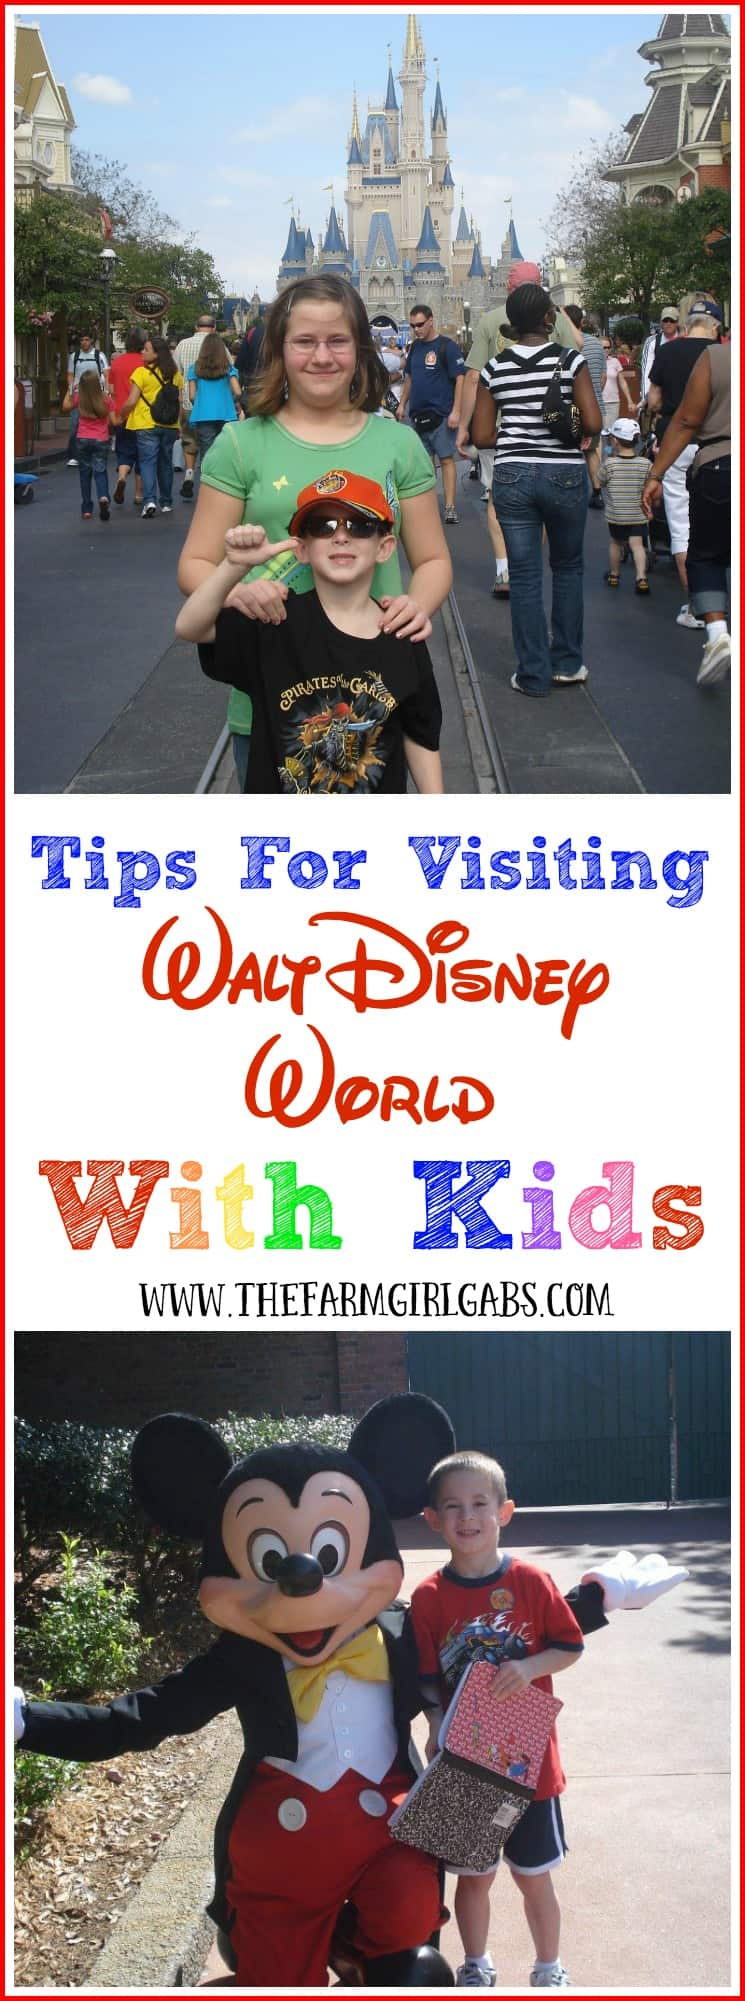 Perfect Disney planning advice from THE UNOFFICIAL GUIDE TO WALT DISNEY WORLD WITH KIDS 2016. This guide is jam-packed with used Walt Disney World vacation planning information for your family.